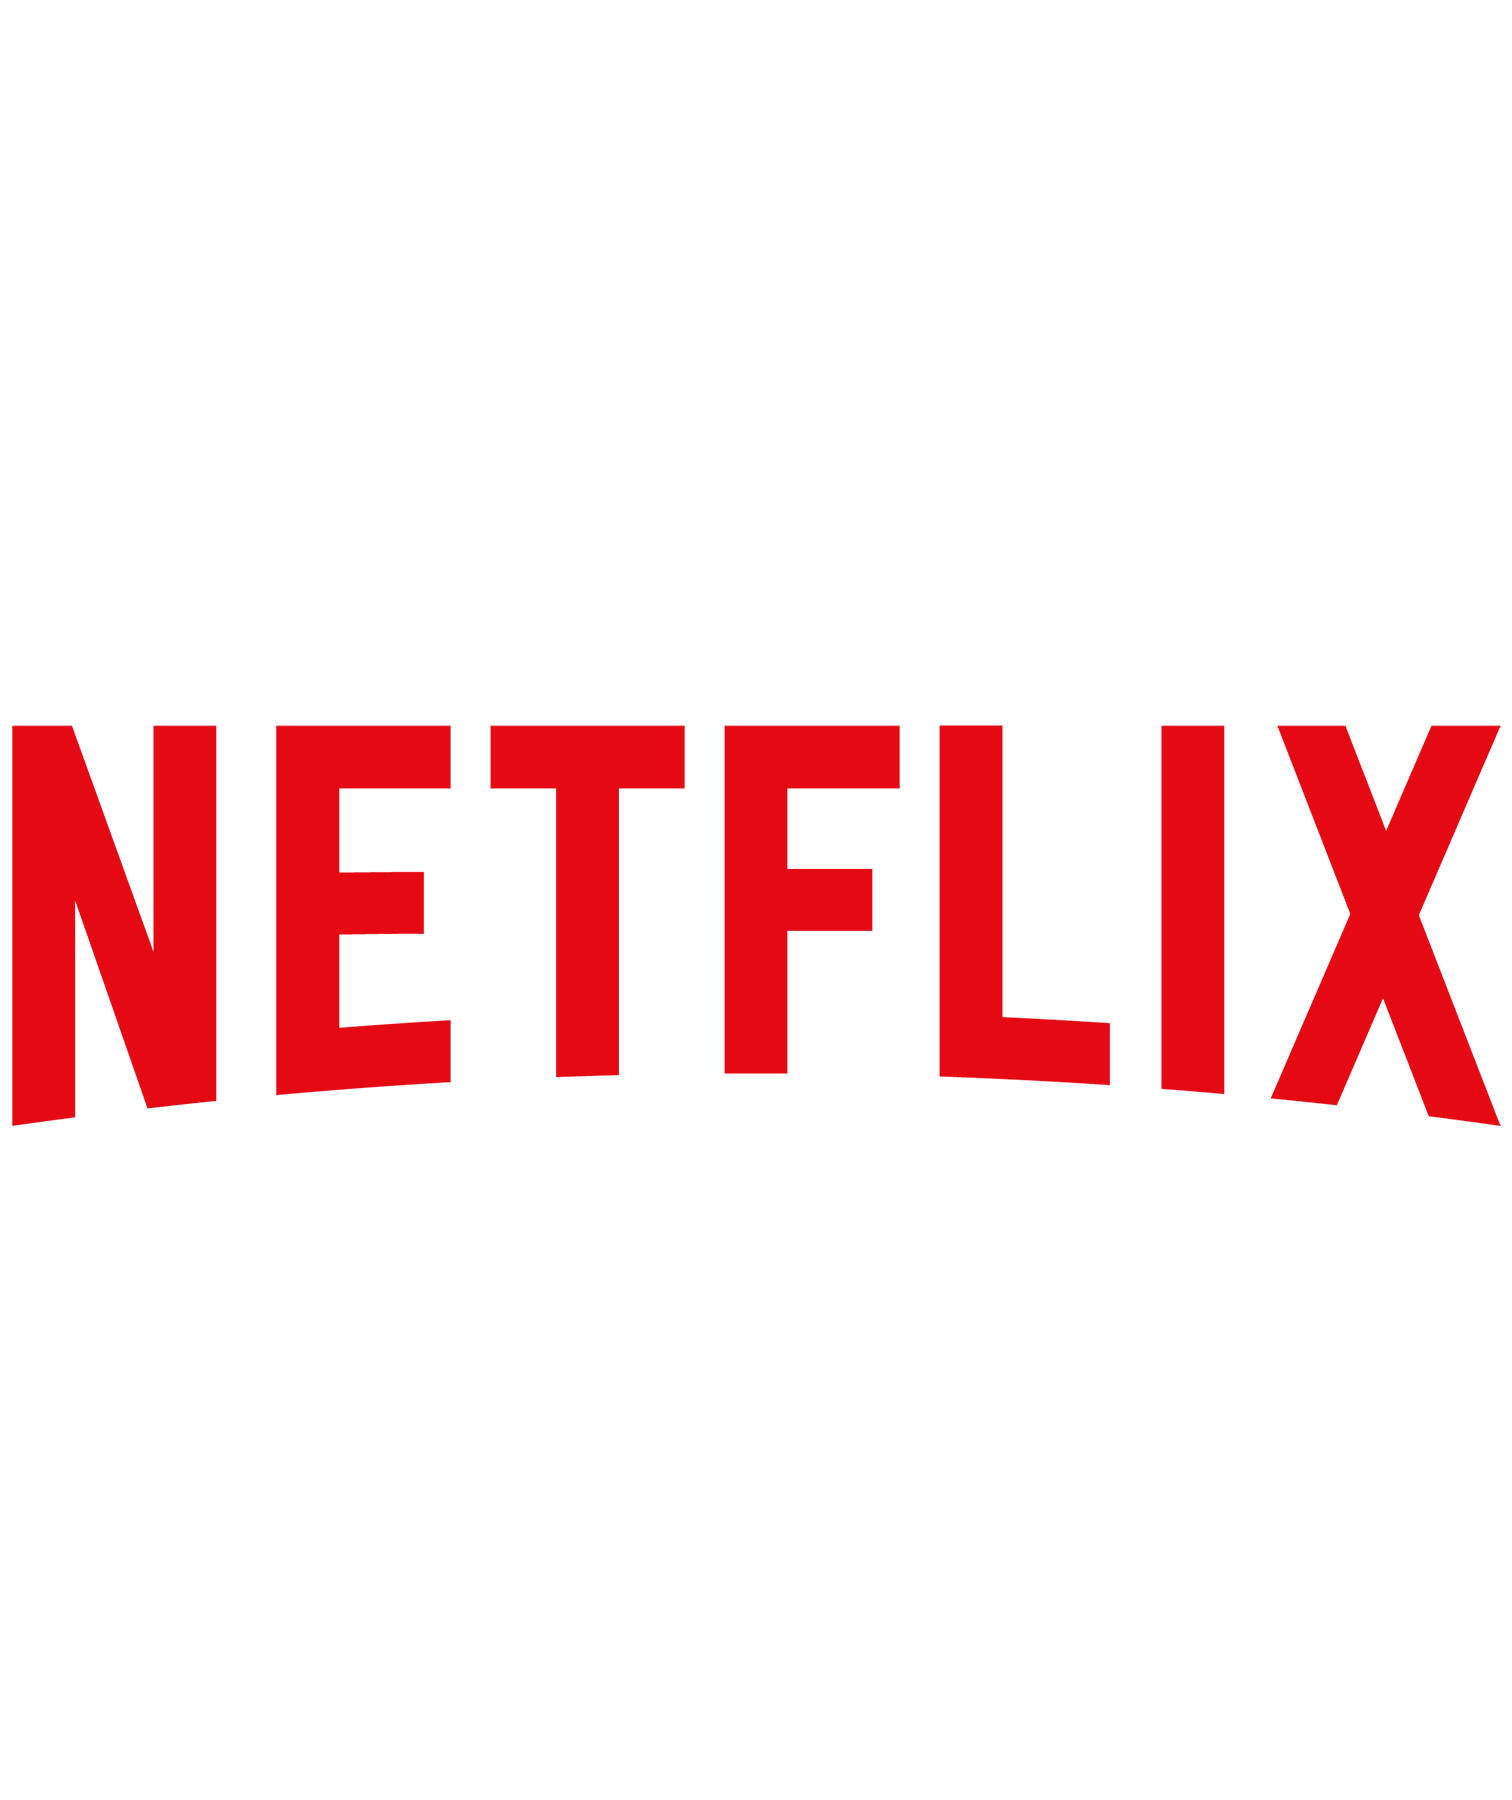 Netflix logo on white